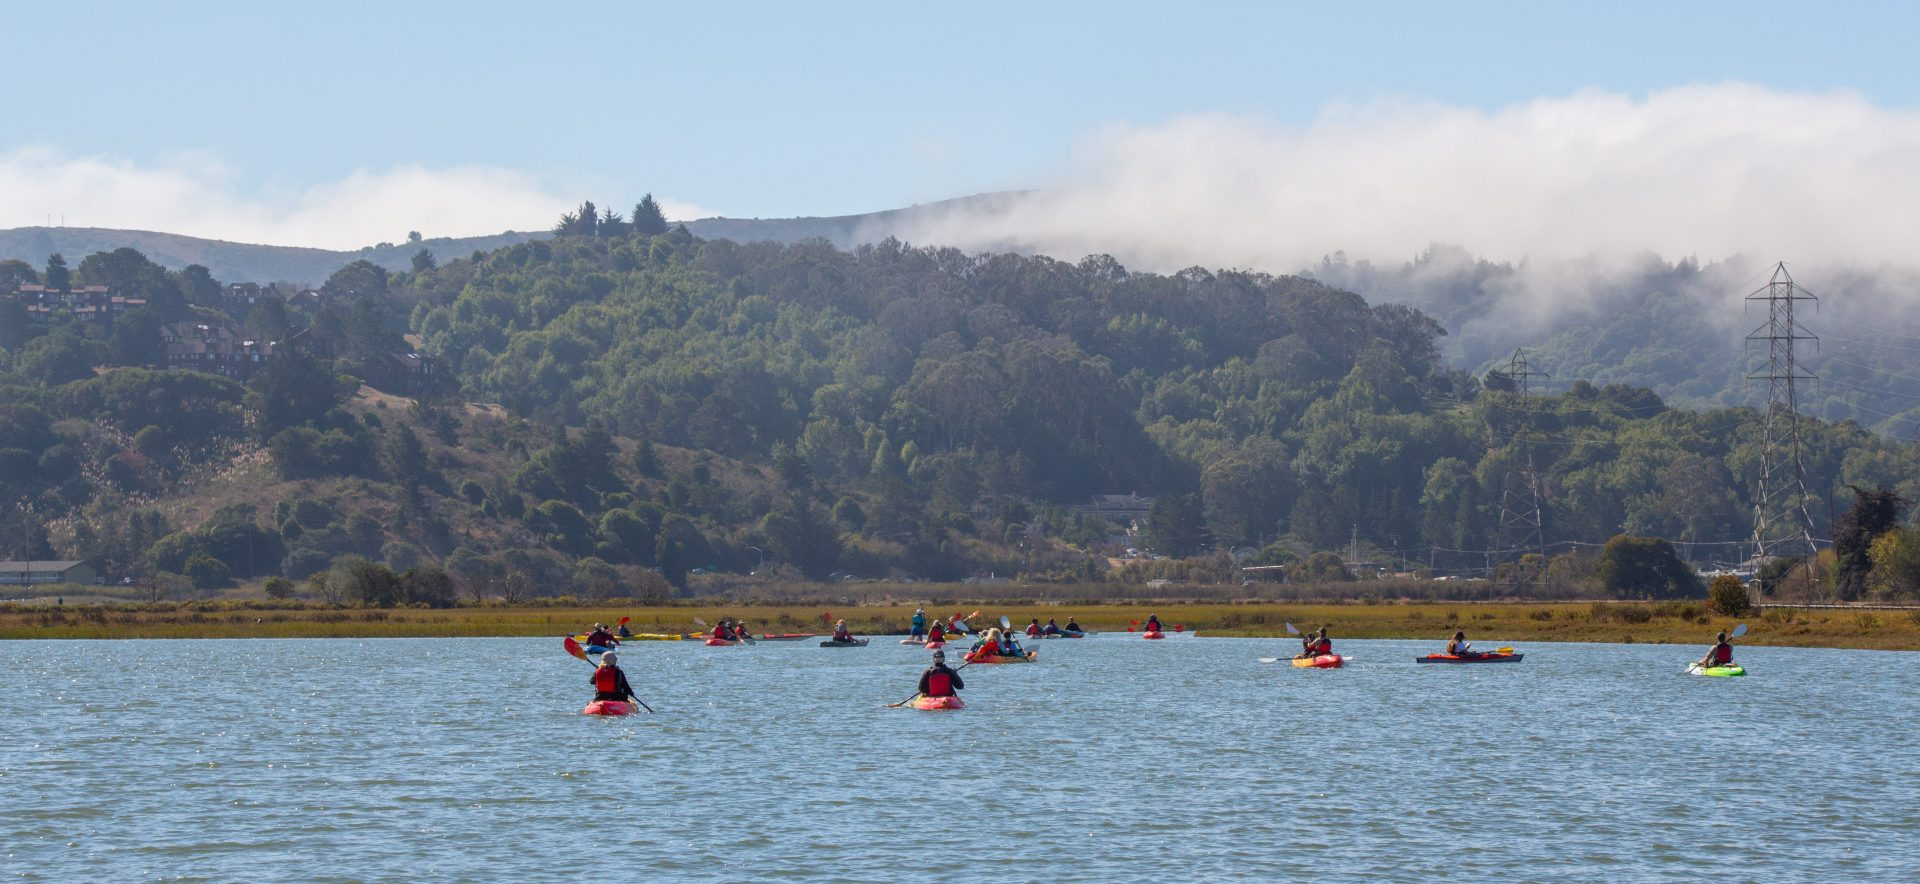 many kayaks on water, marsh and hills with fog in distance